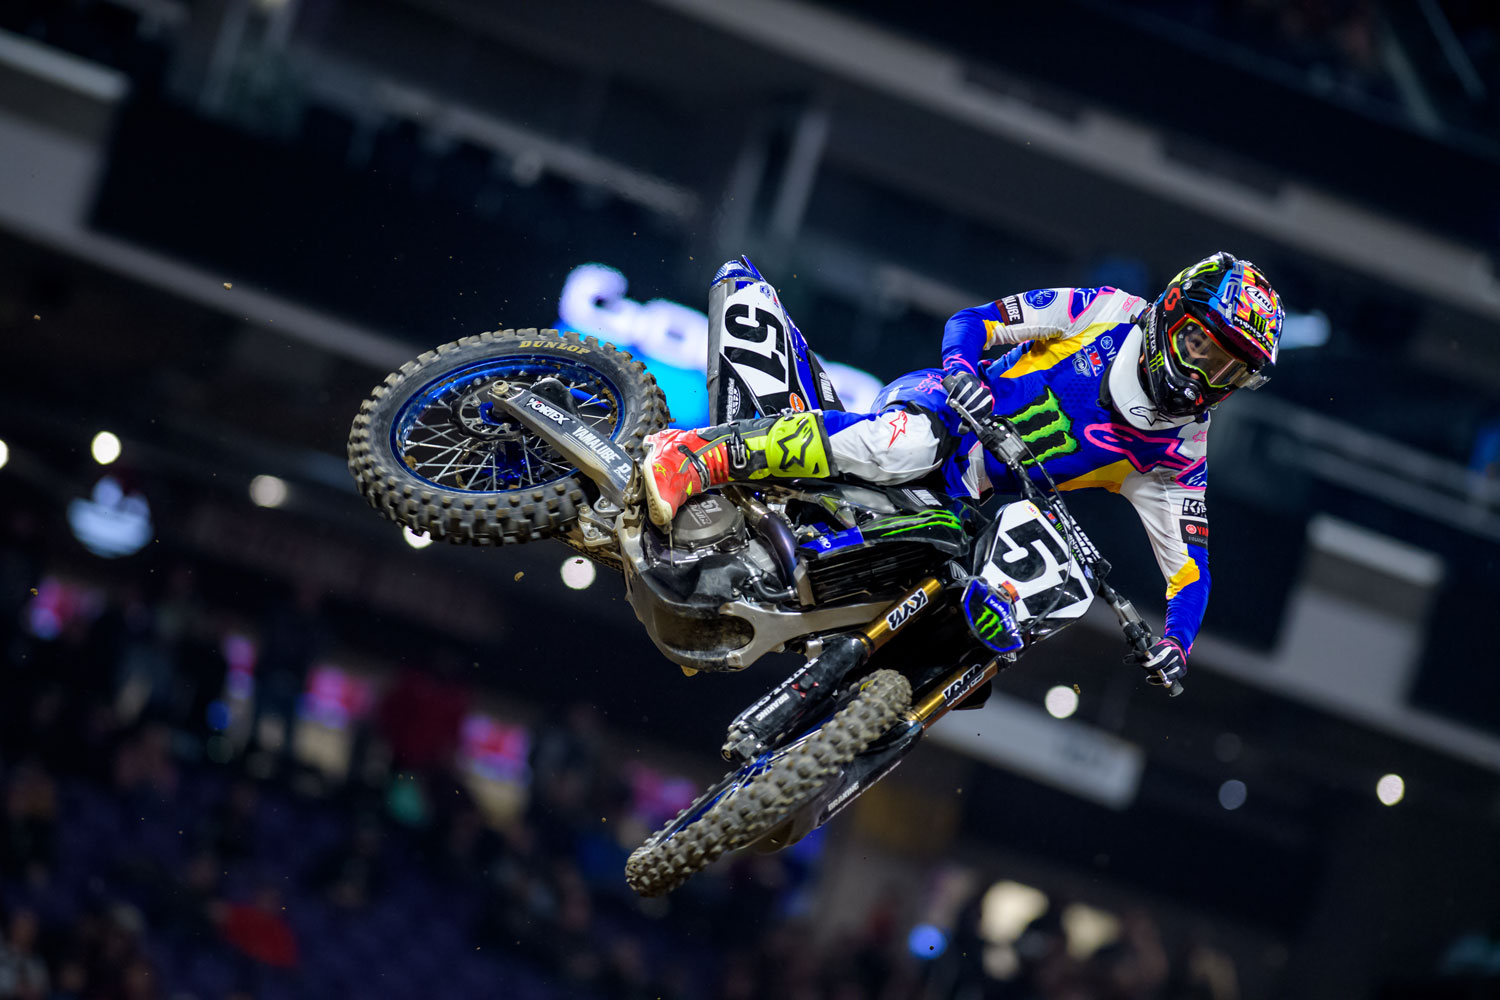 Justin Barcia took 2nd in his heat race and finished 9th in the main.